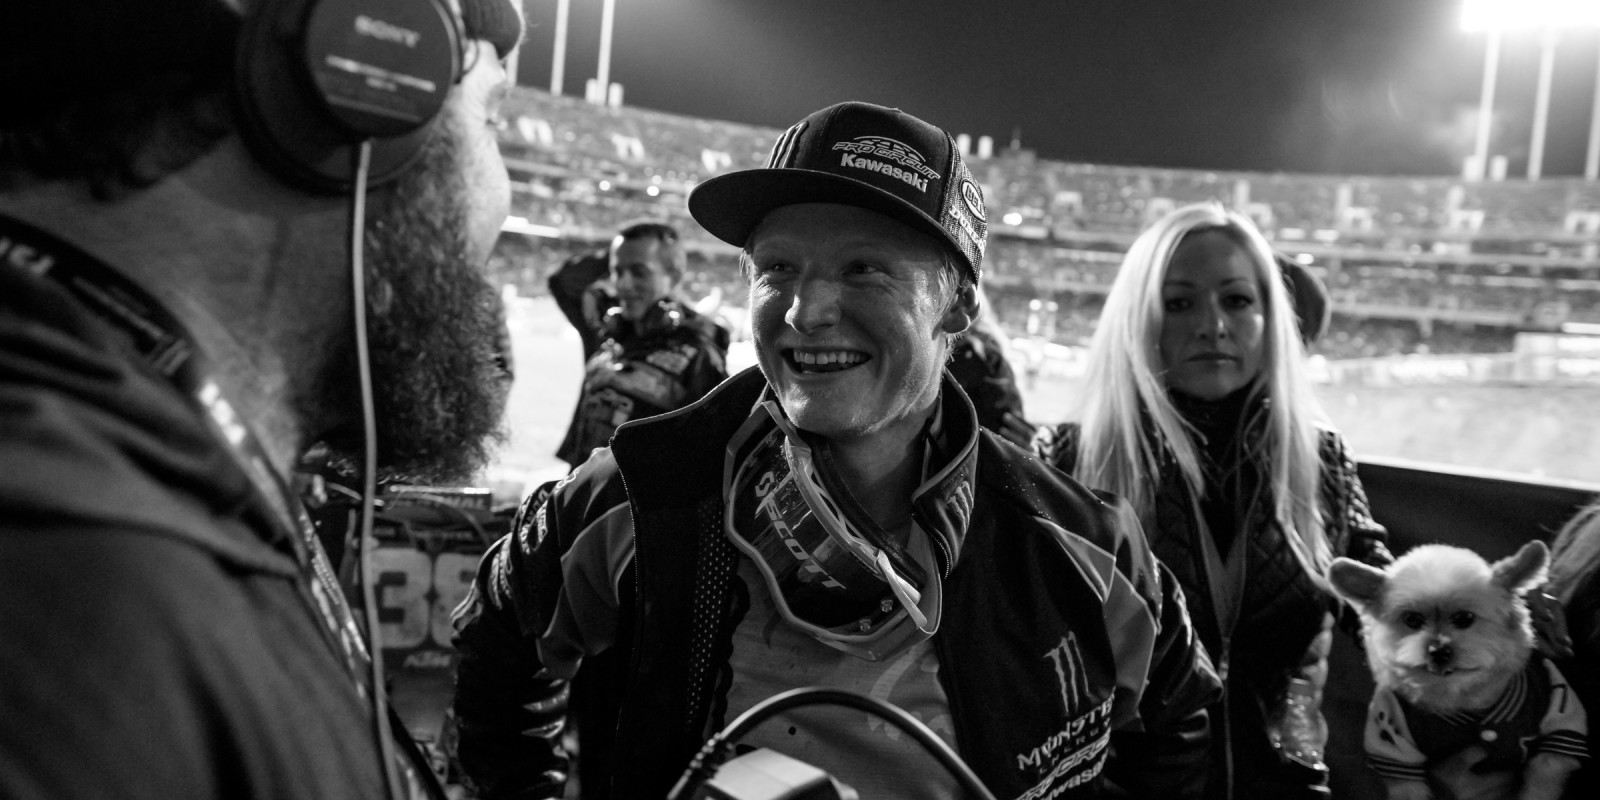 Justin Hill during stop 5 of the 2017 Supercross season in Oakland, CA